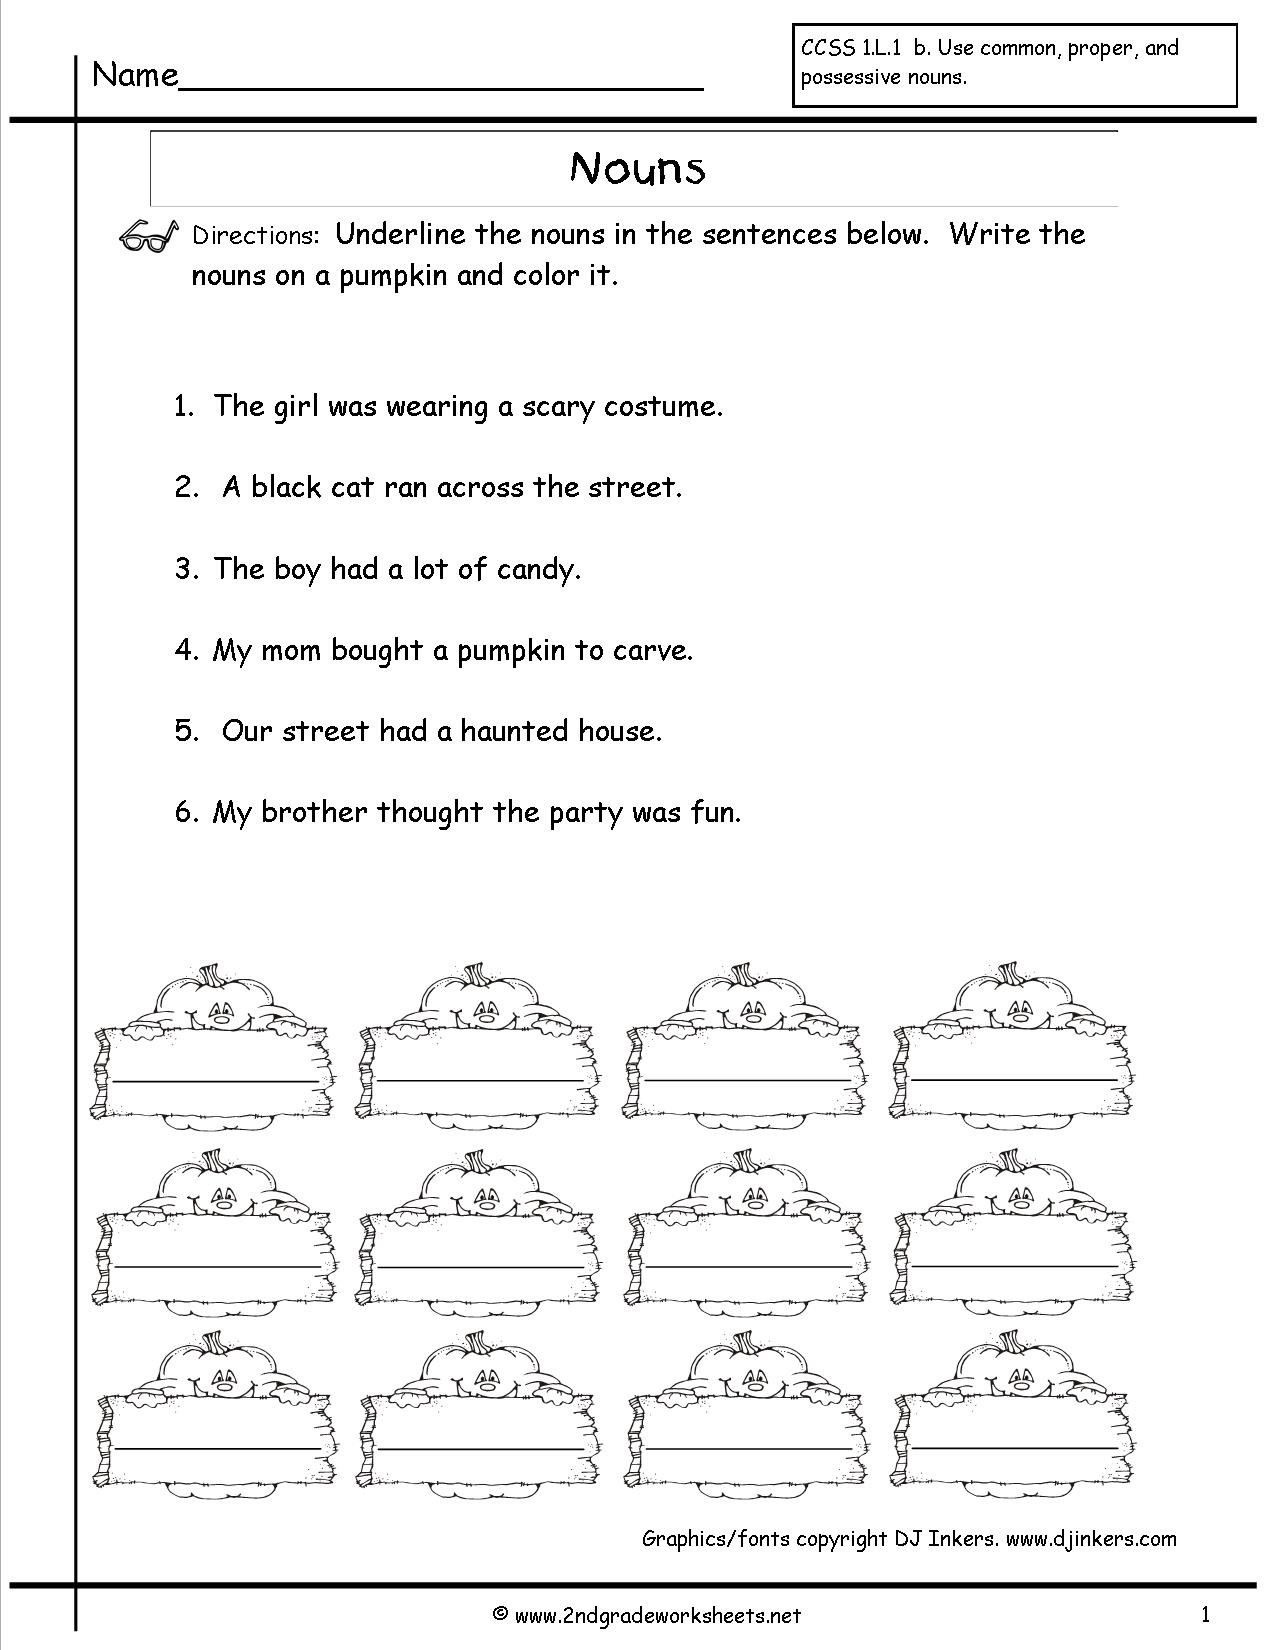 Printable Worksheet On Nouns Nouns Worksheets and Printouts First Grade Noun